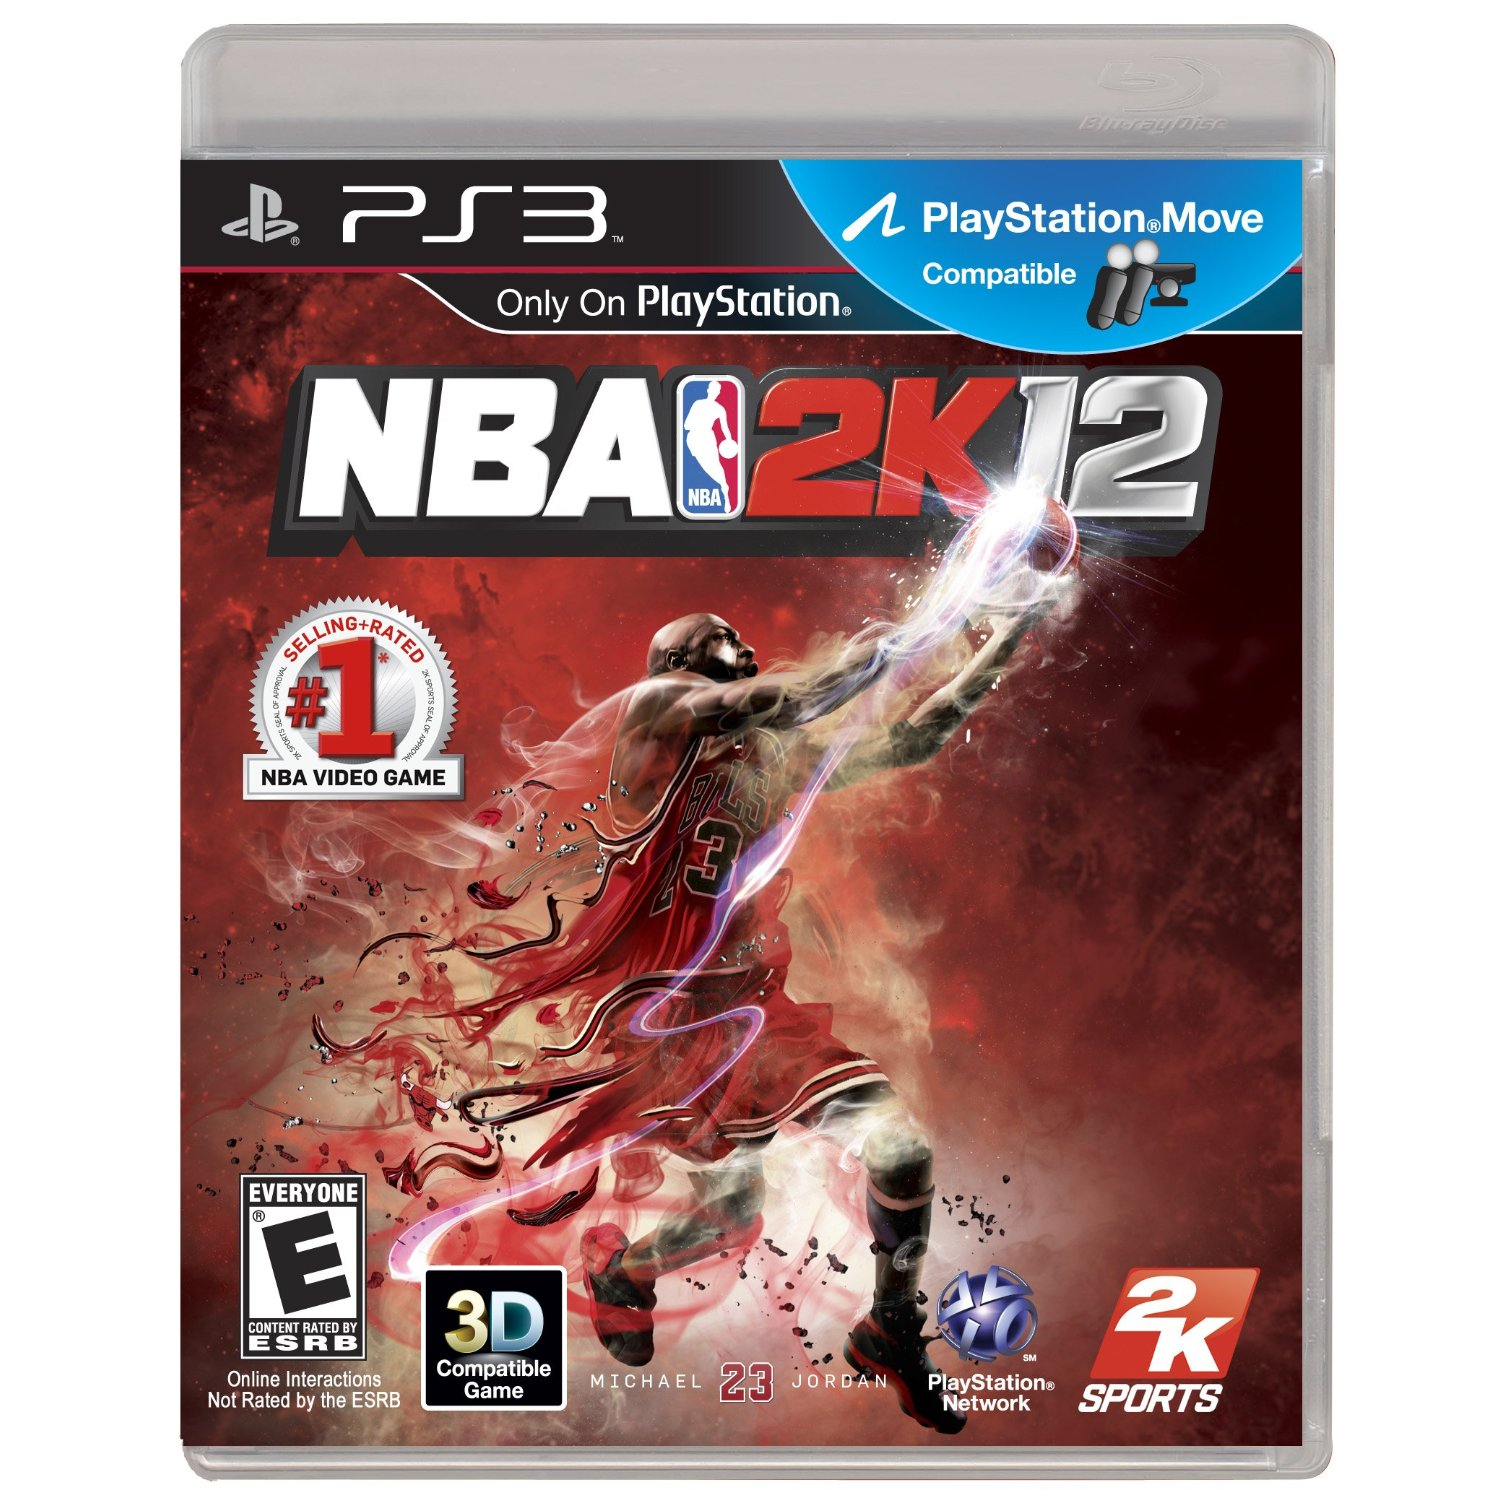 PS3 - NBA 2K12 (Pre-Played)